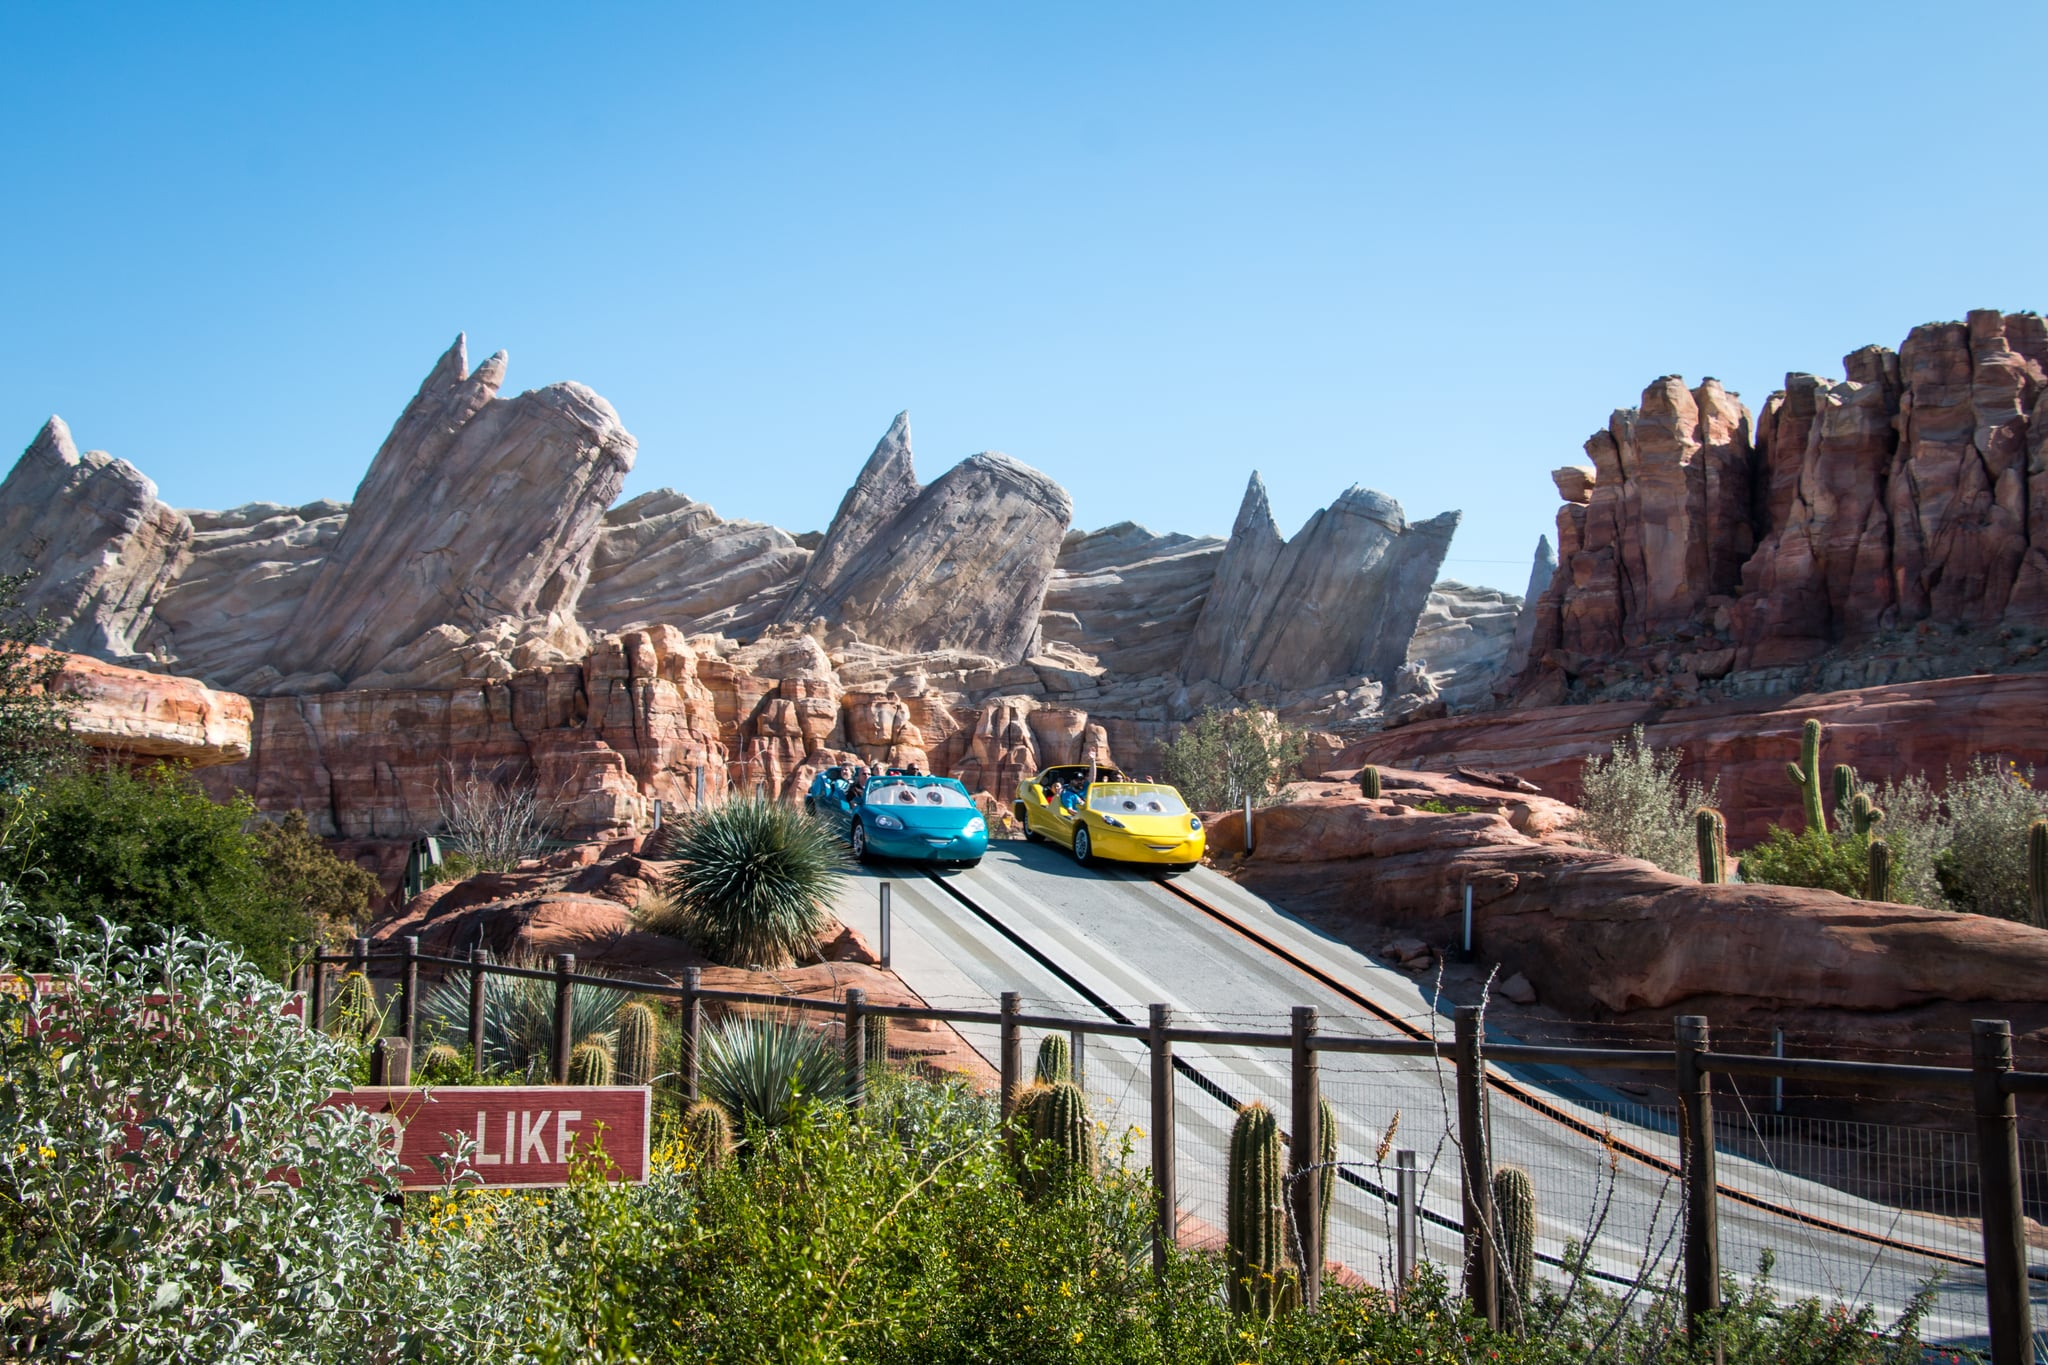 Radiator Springs Racers Disney California Adventure Here Are The 11 Best Rides At Disneyland According To Parkgoers Popsugar Smart Living Photo 10